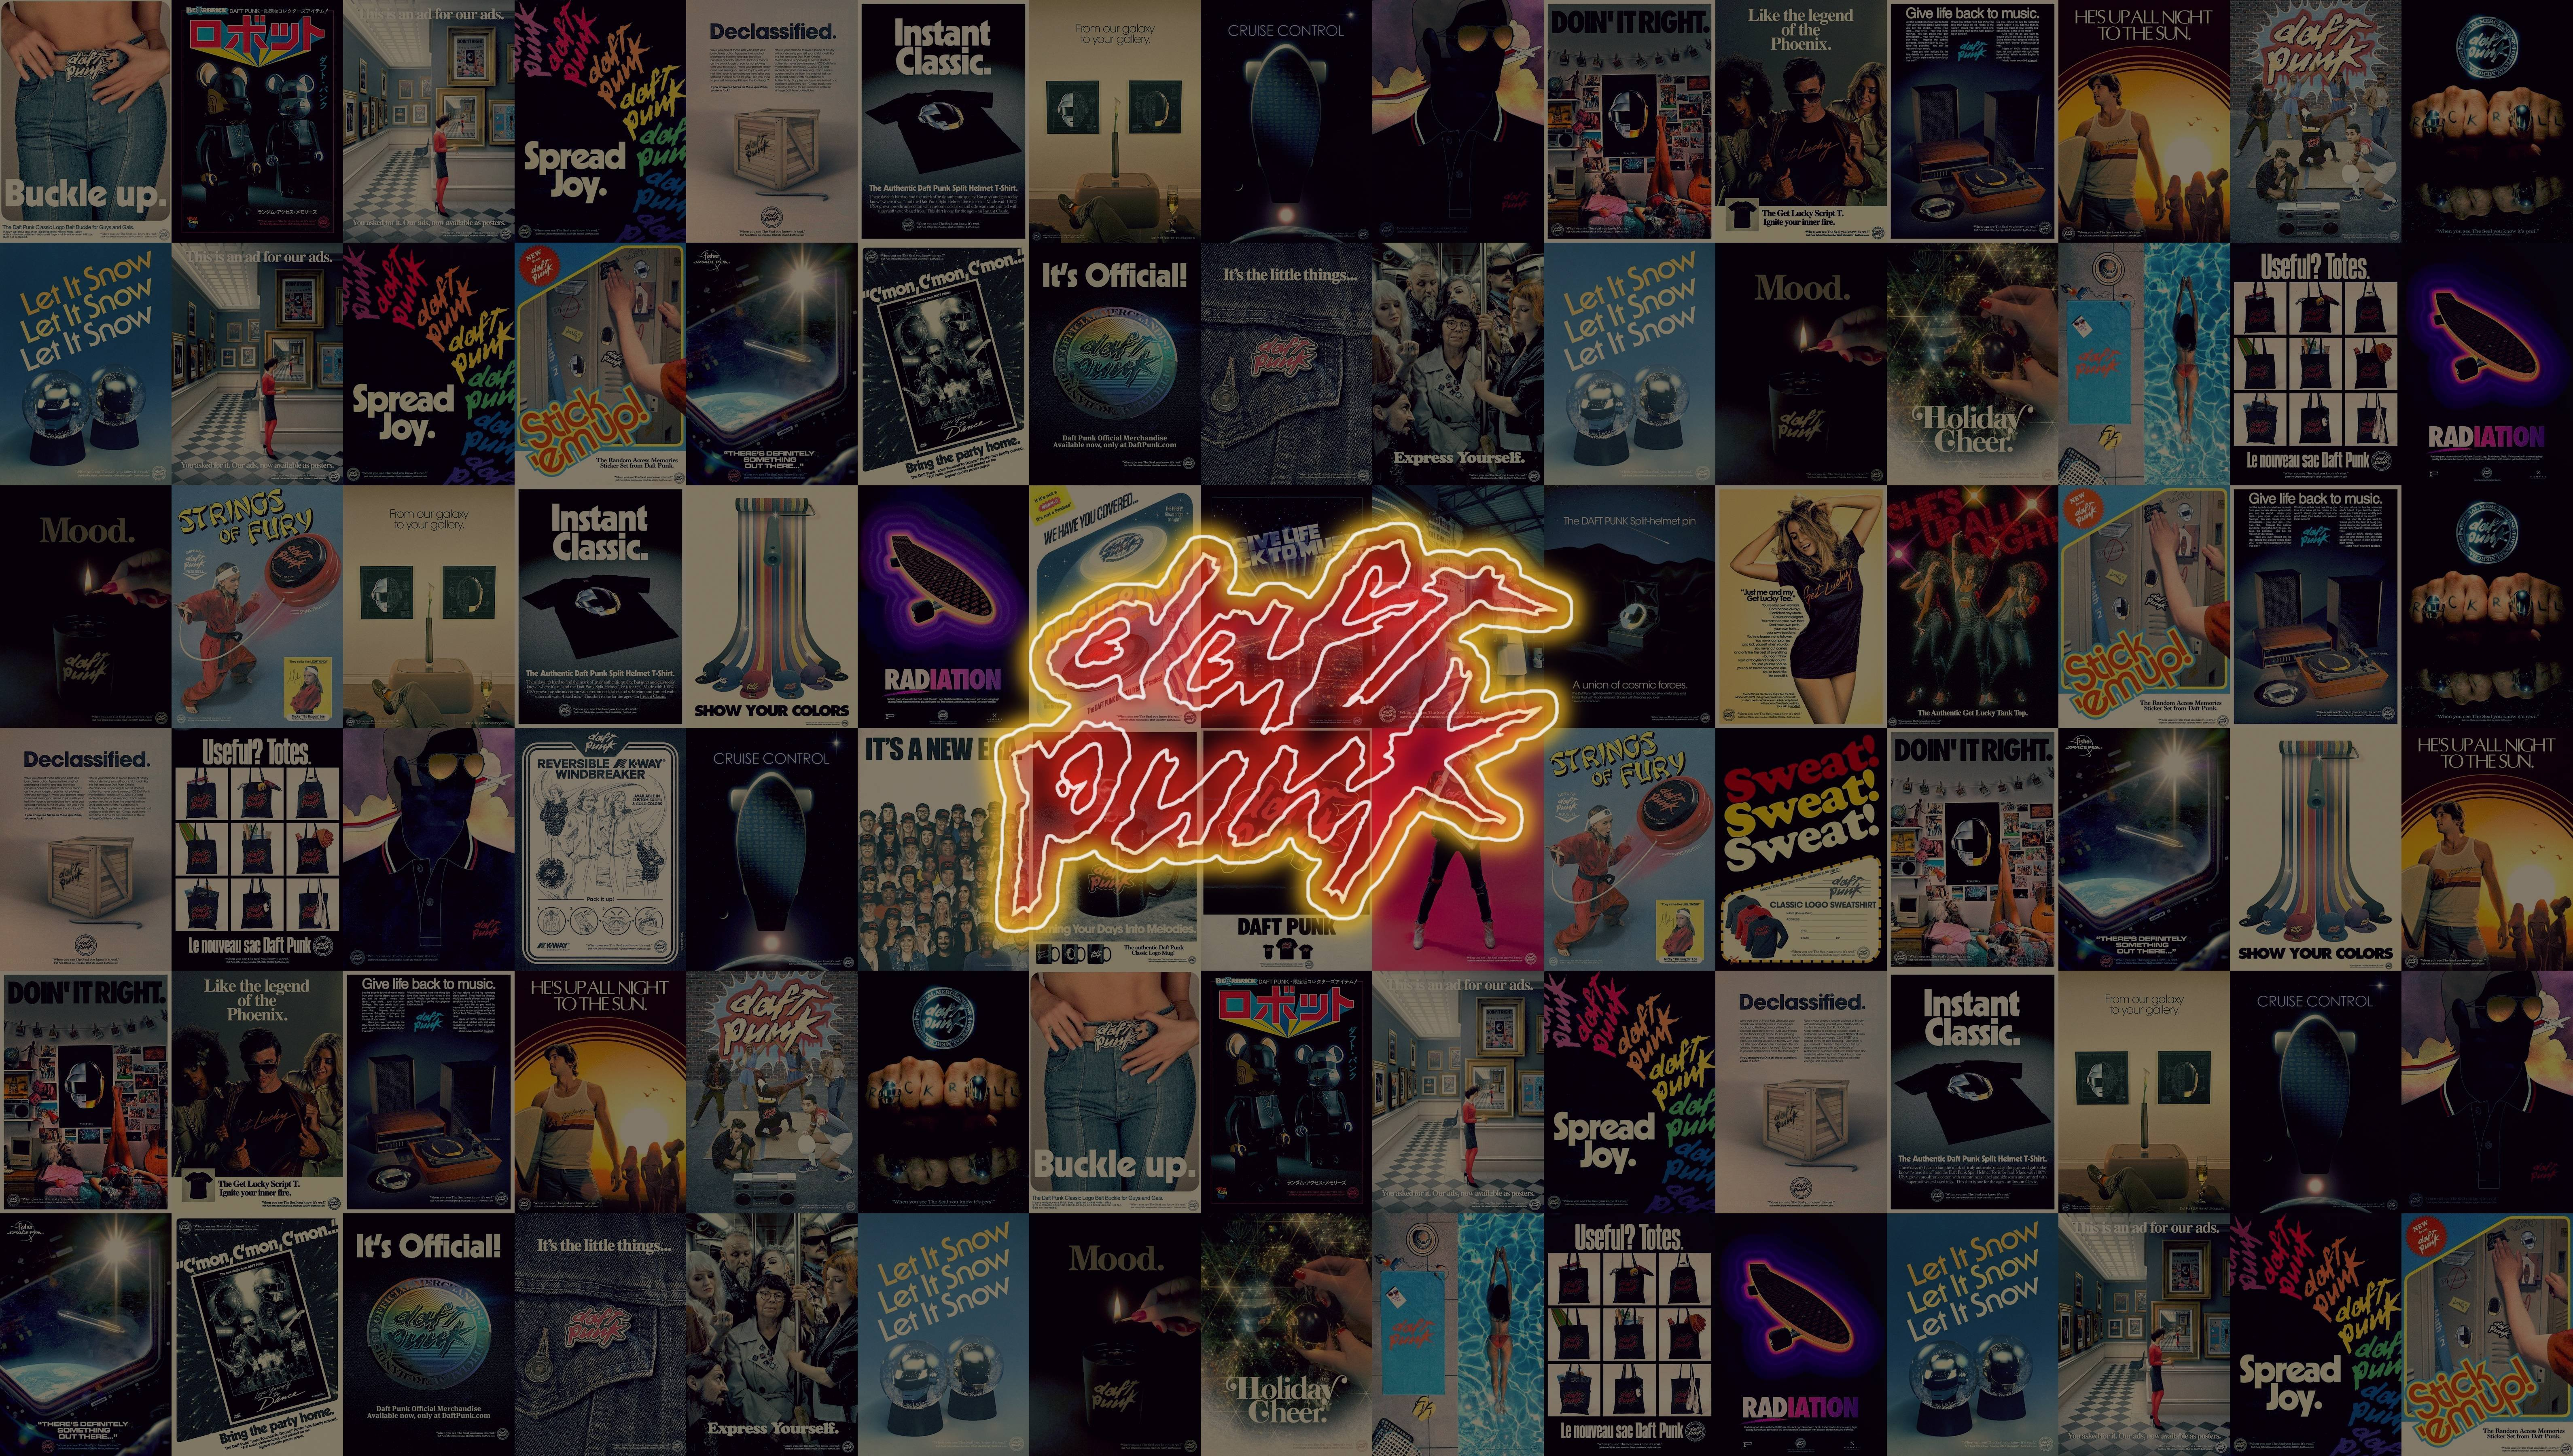 Pop Punk Inspired Bedroom: Inspired Wallpapers, Photos And Desktop Backgrounds Up To